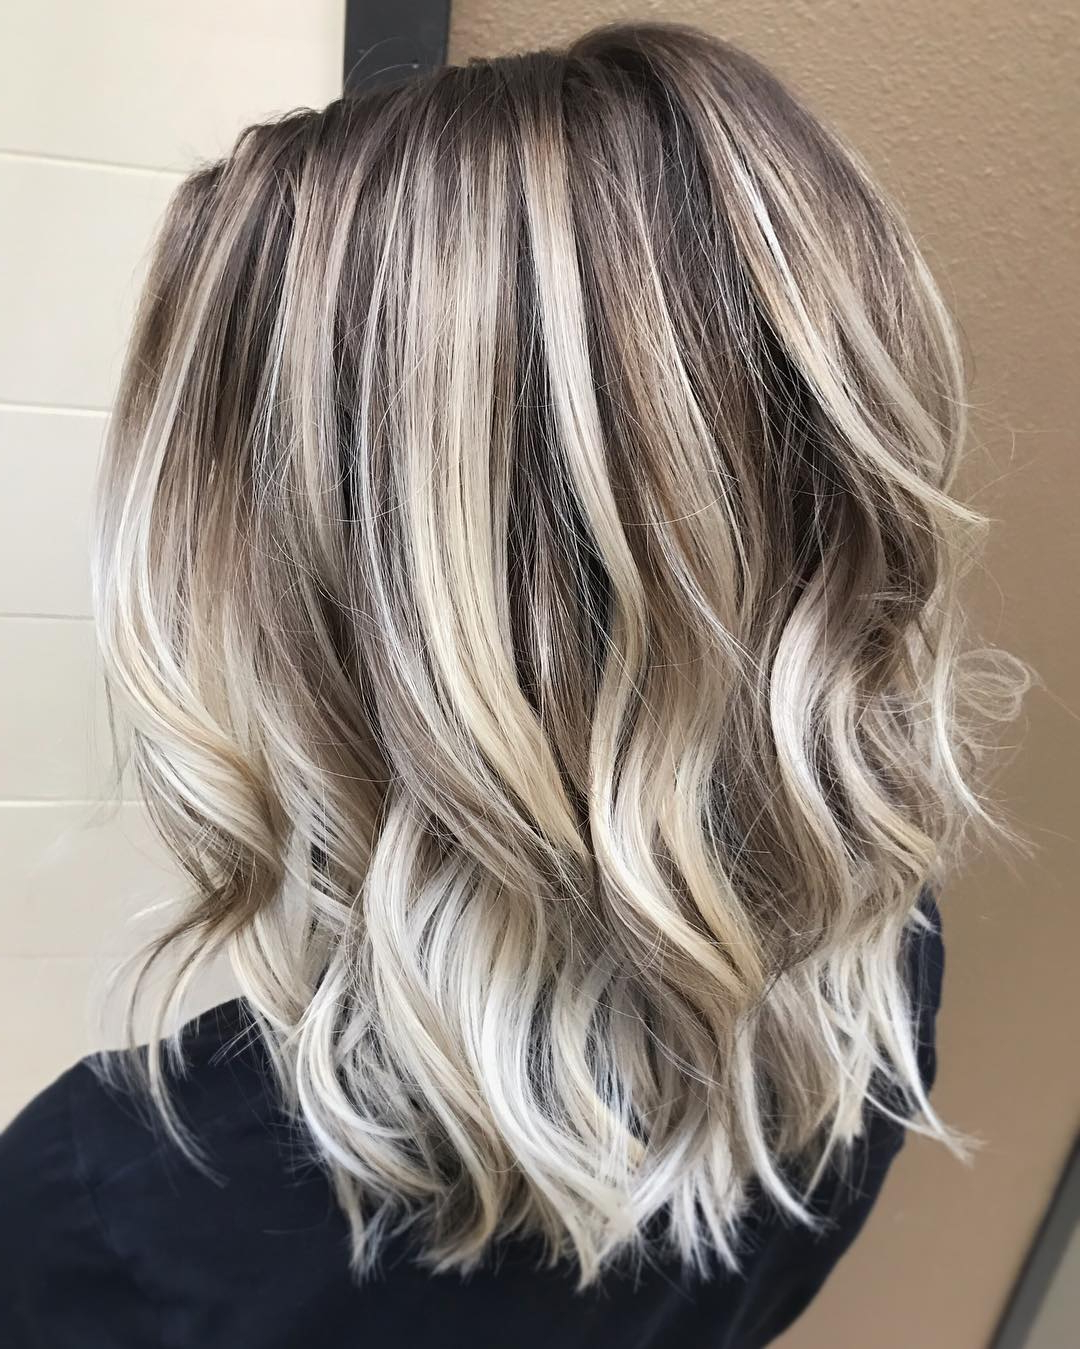 10 Ash Blonde Hairstyles For All Skin Tones, 2018 Best Hair Color Trends Inside Long Blonde Pixie Haircuts With Root Fade (View 16 of 20)